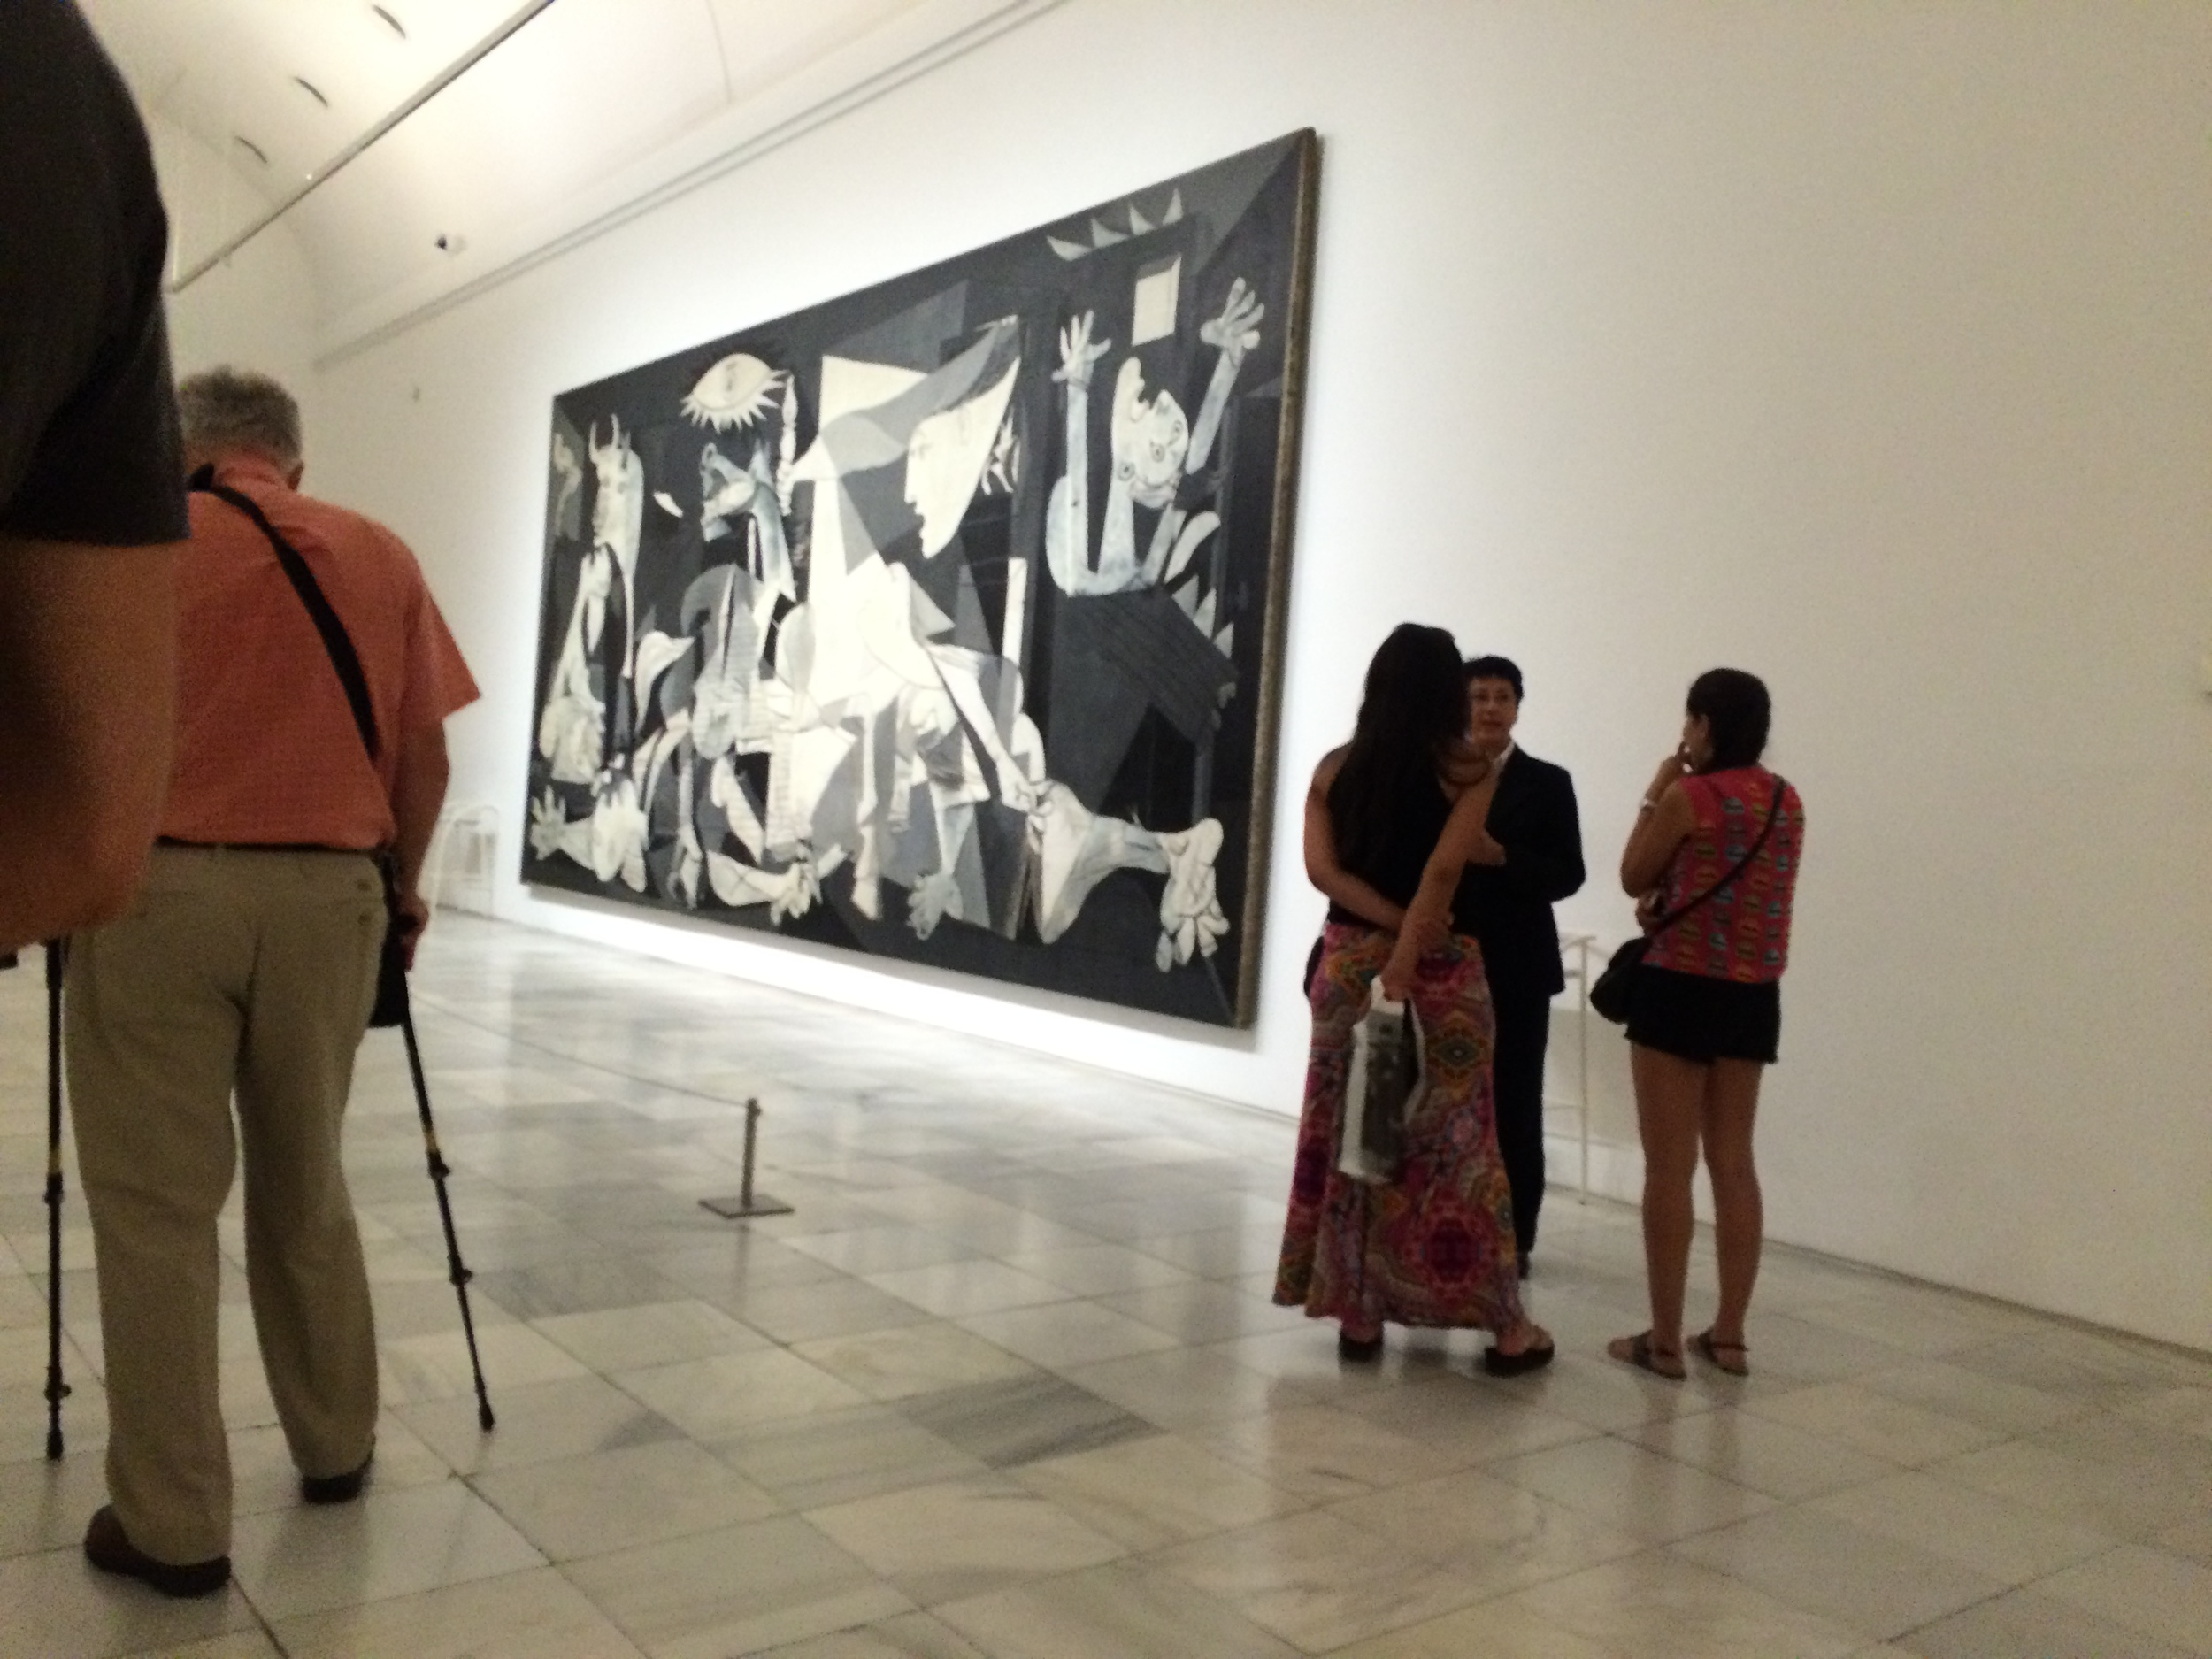 Definitely not an iPhone snap of Guernica... that's not allowed,ya dingus.